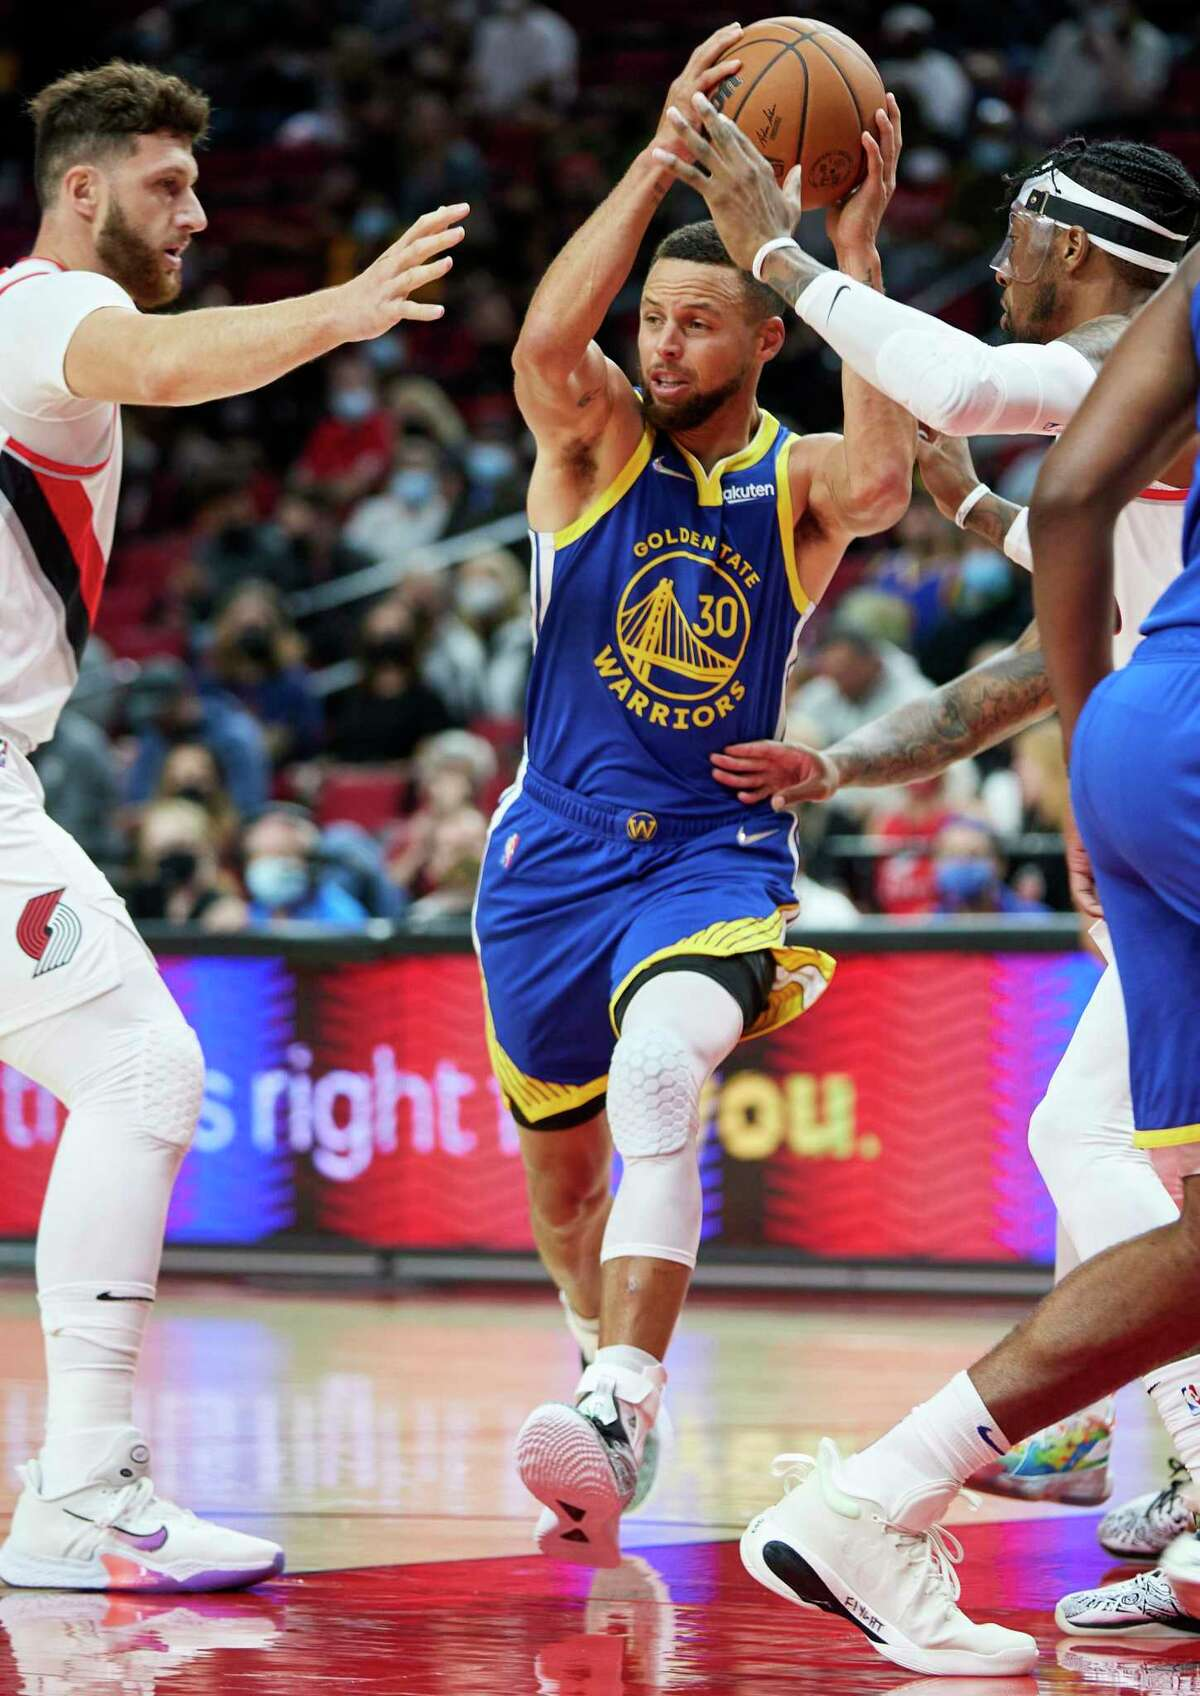 Golden State Warriors guard Stephen Curry, center, drives to the basket between Portland Trail Blazers center Jusuf Nurkic, left, and forward Robert Covington, right, during the first half of a preseason NBA basketball game in Portland, Ore., Monday, Oct. 4, 2021. (AP Photo/Craig Mitchelldyer)